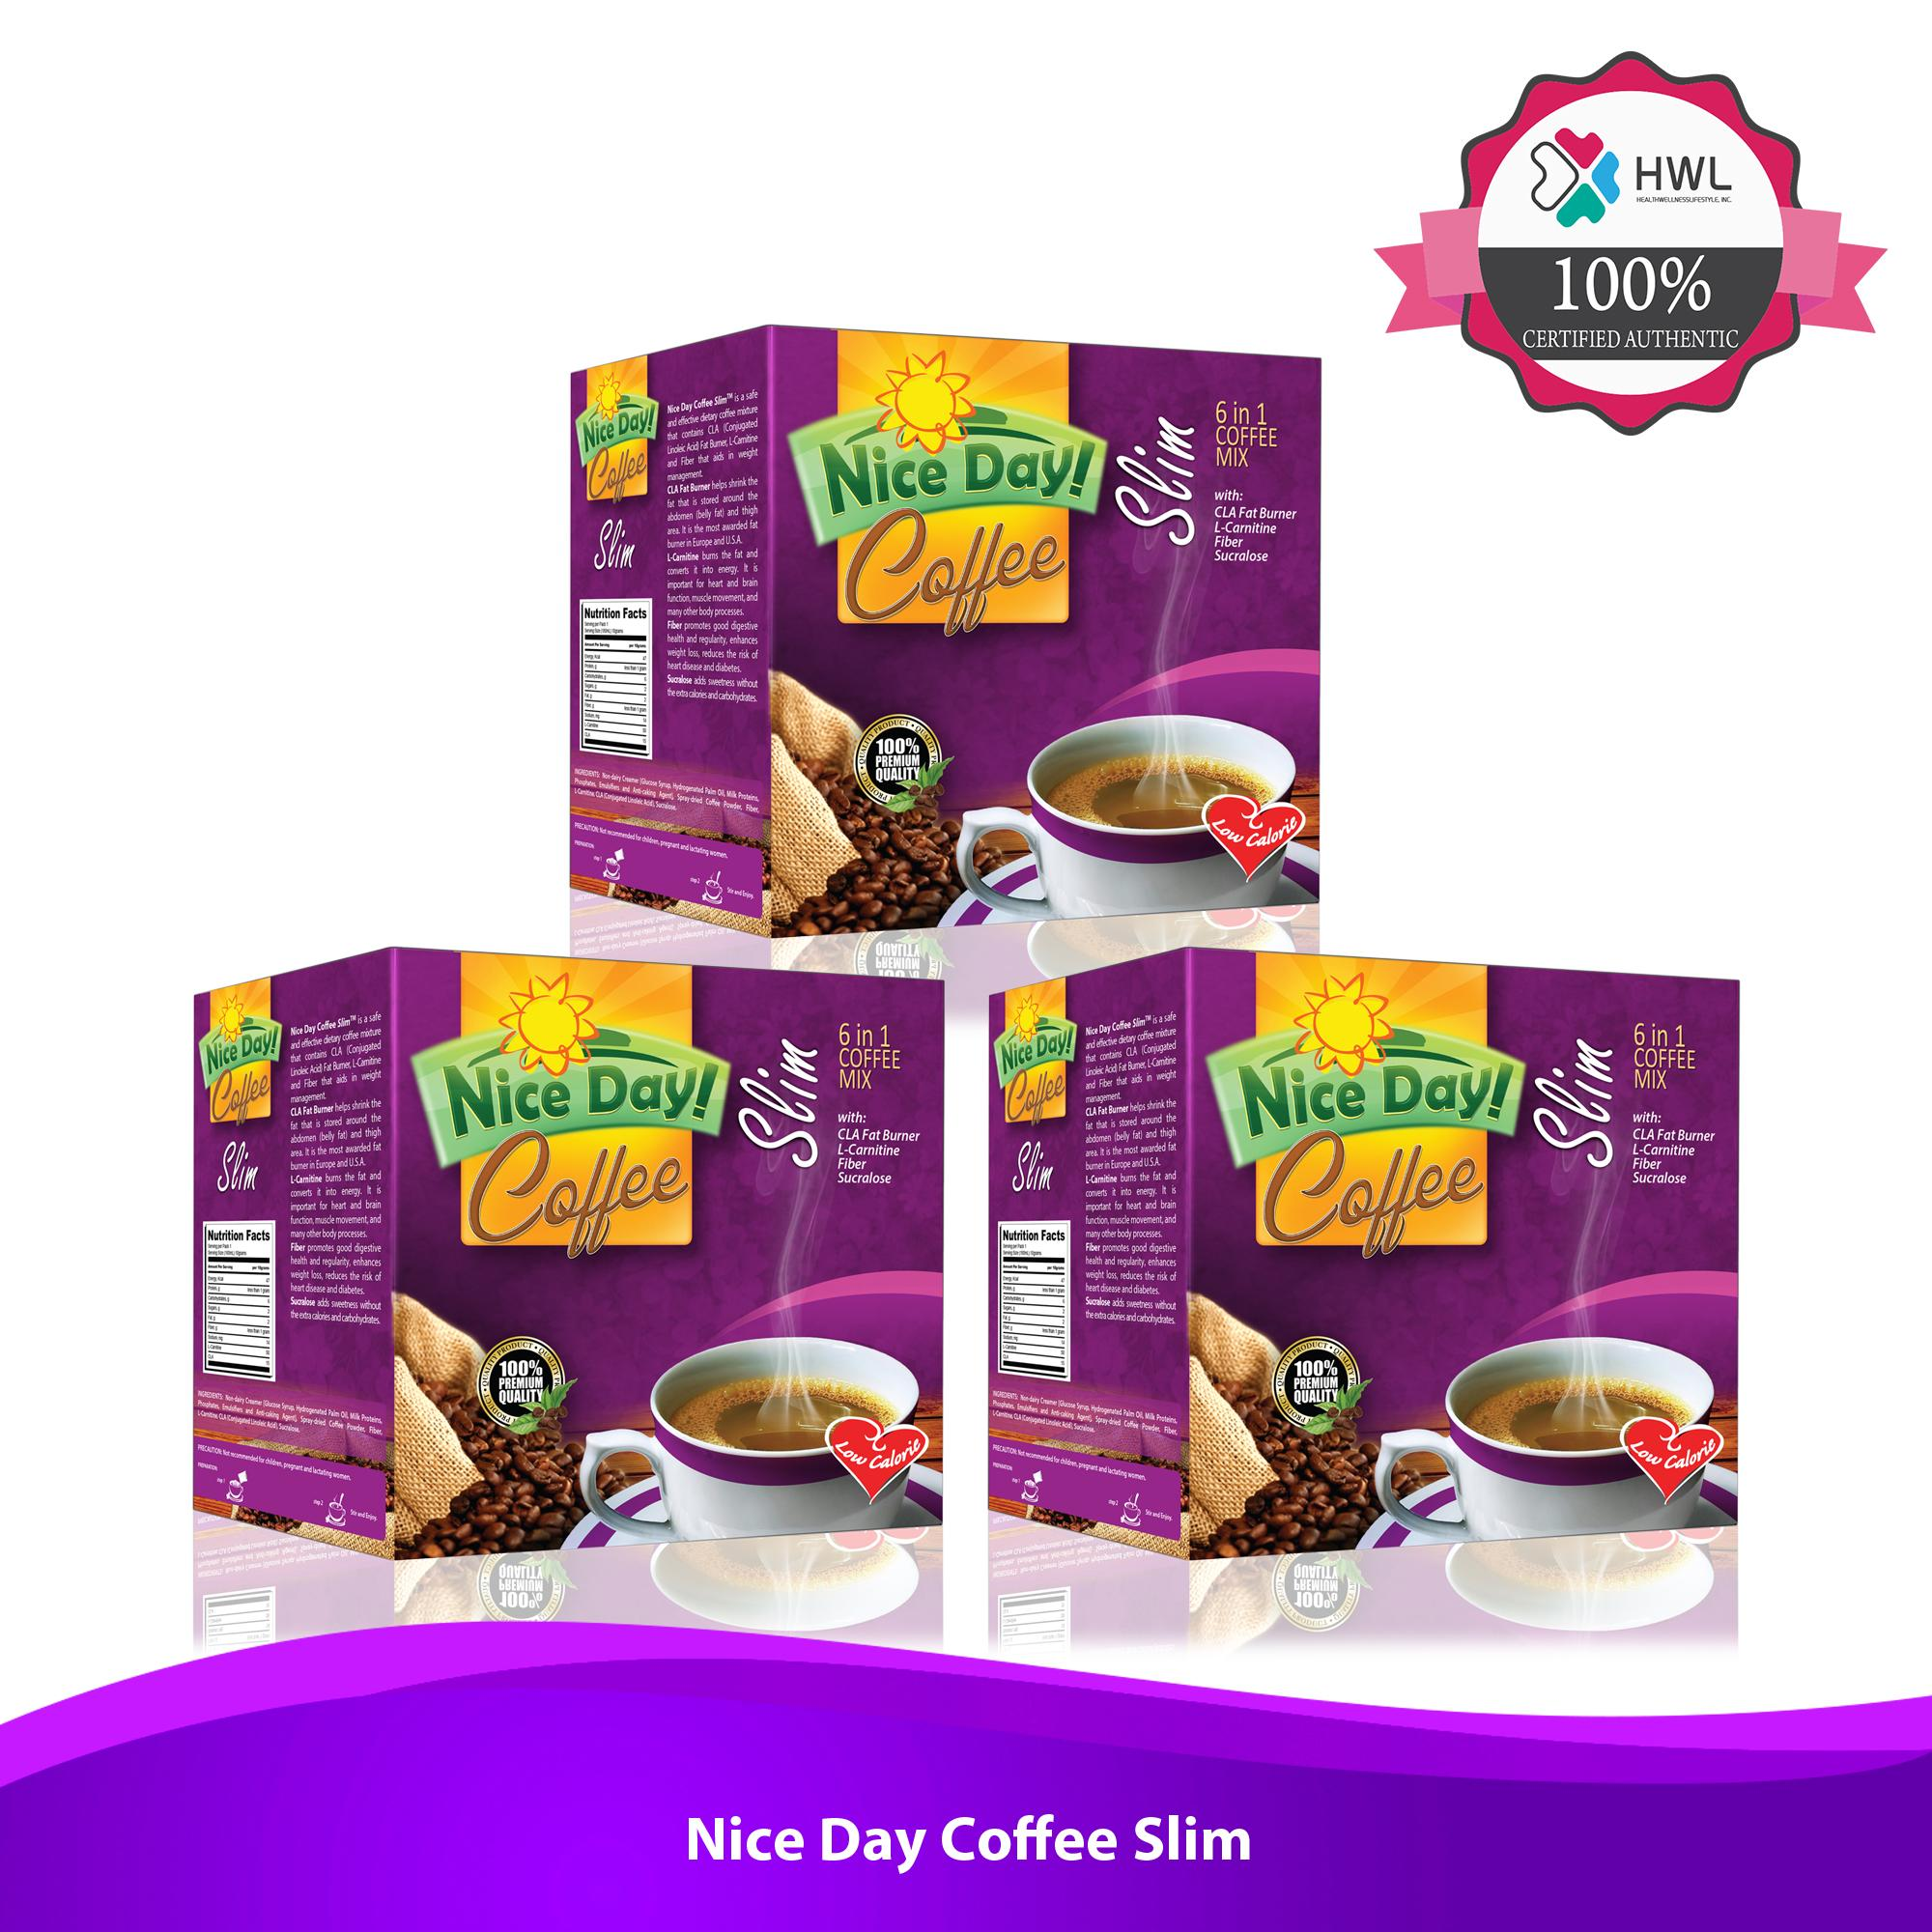 Nice Day Slimming Coffee 3 Boxes